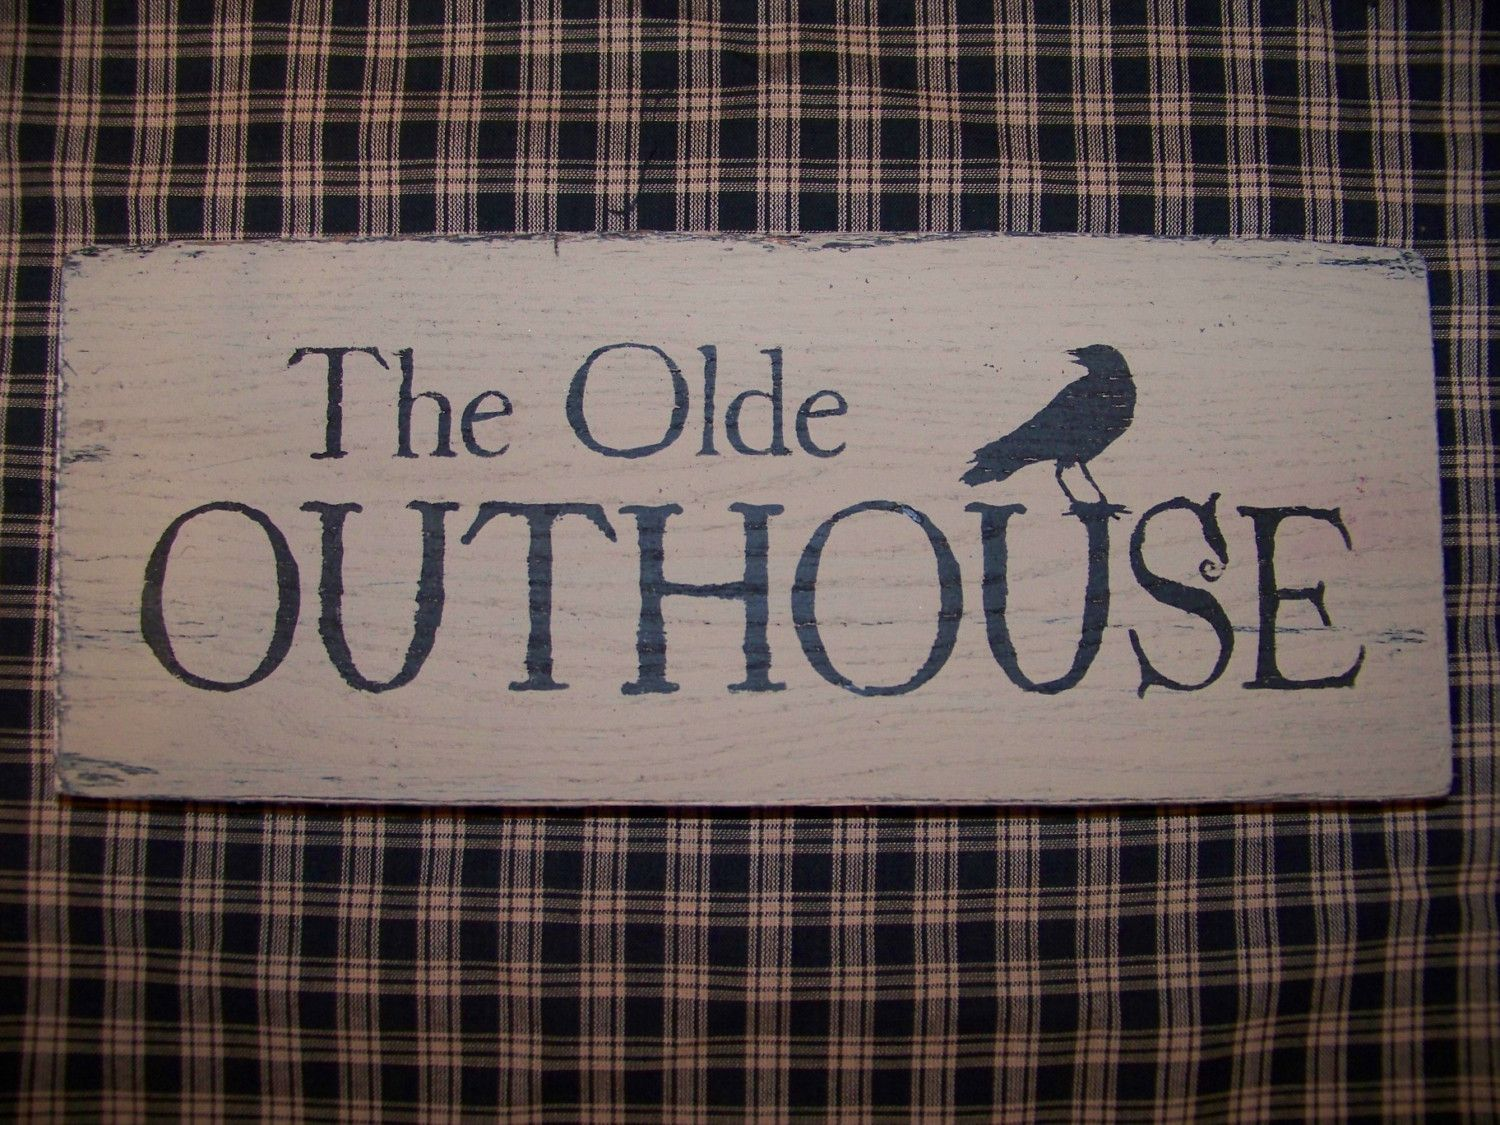 Primitive country bathroom decorating ideas - Primitive The Olde Outhouse Wood Sign Crow Bathroom Decor Country Bath Accent Rustic Charm Black And Tan Grungy Folk Art Prim Make Do Cabin Look Rough Edges